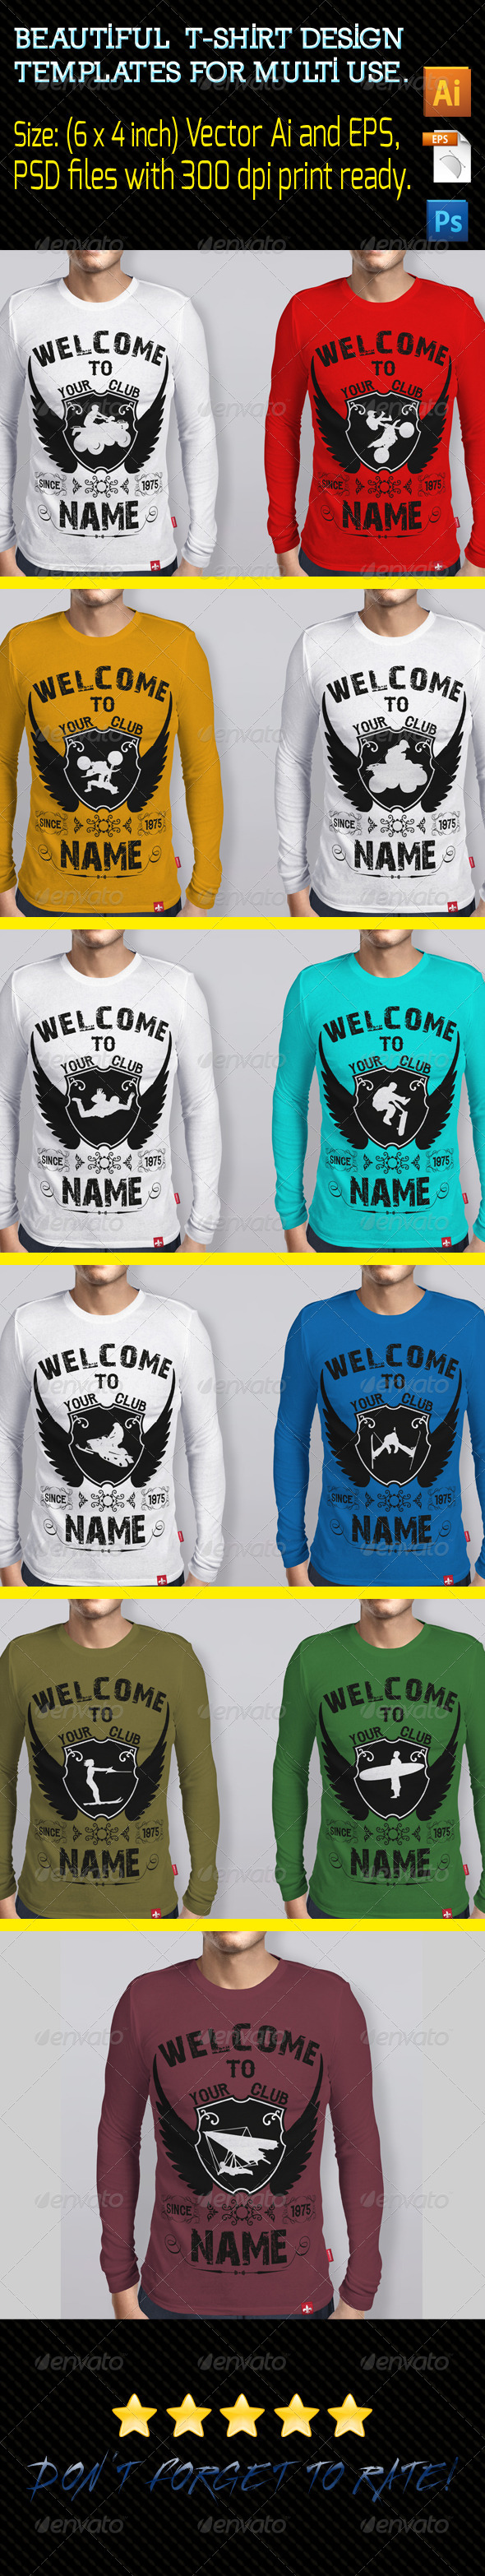 GraphicRiver T-Shirts Design Template 01 8317864